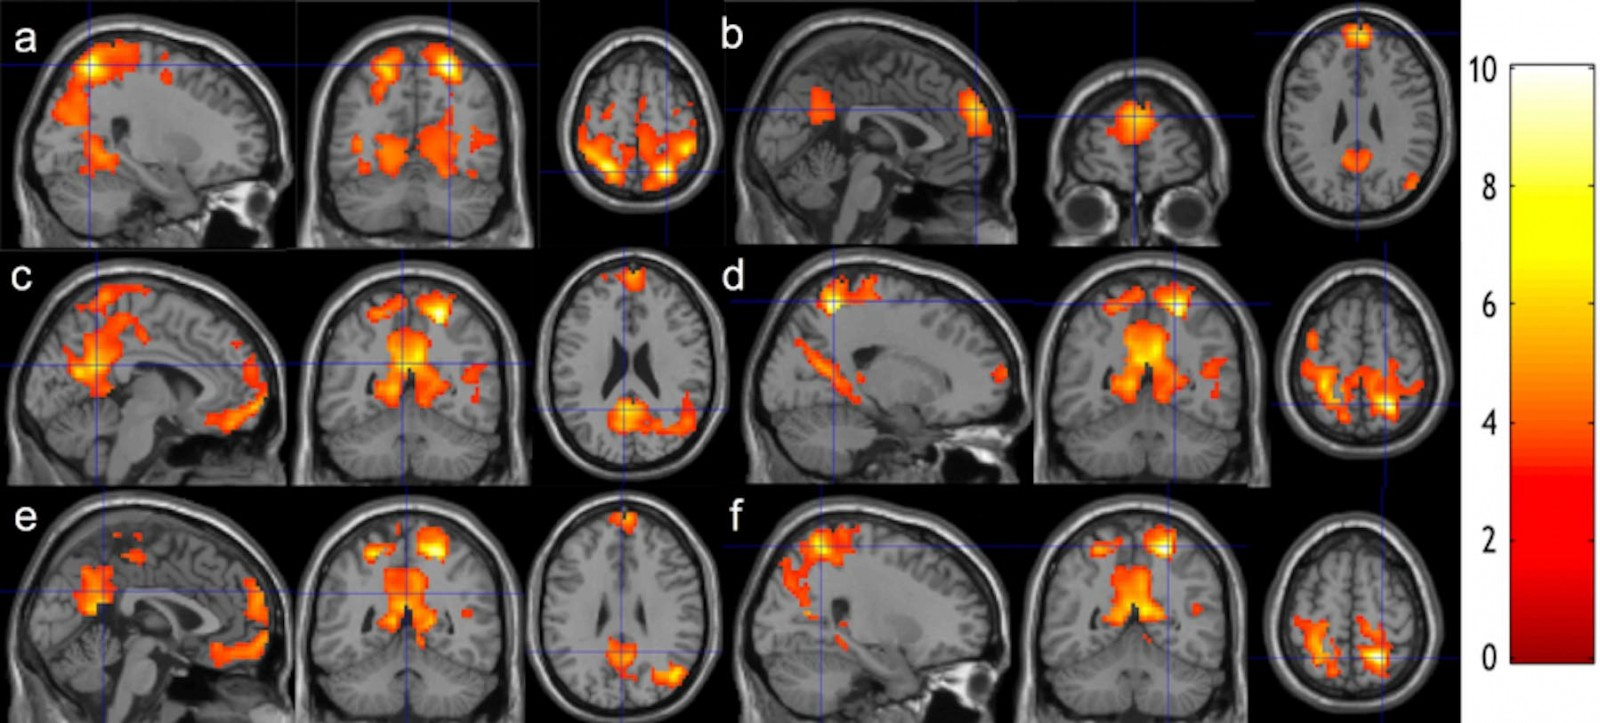 Researchers at Binghamton University scanned students' brains before and after eight weeks of meditation training.